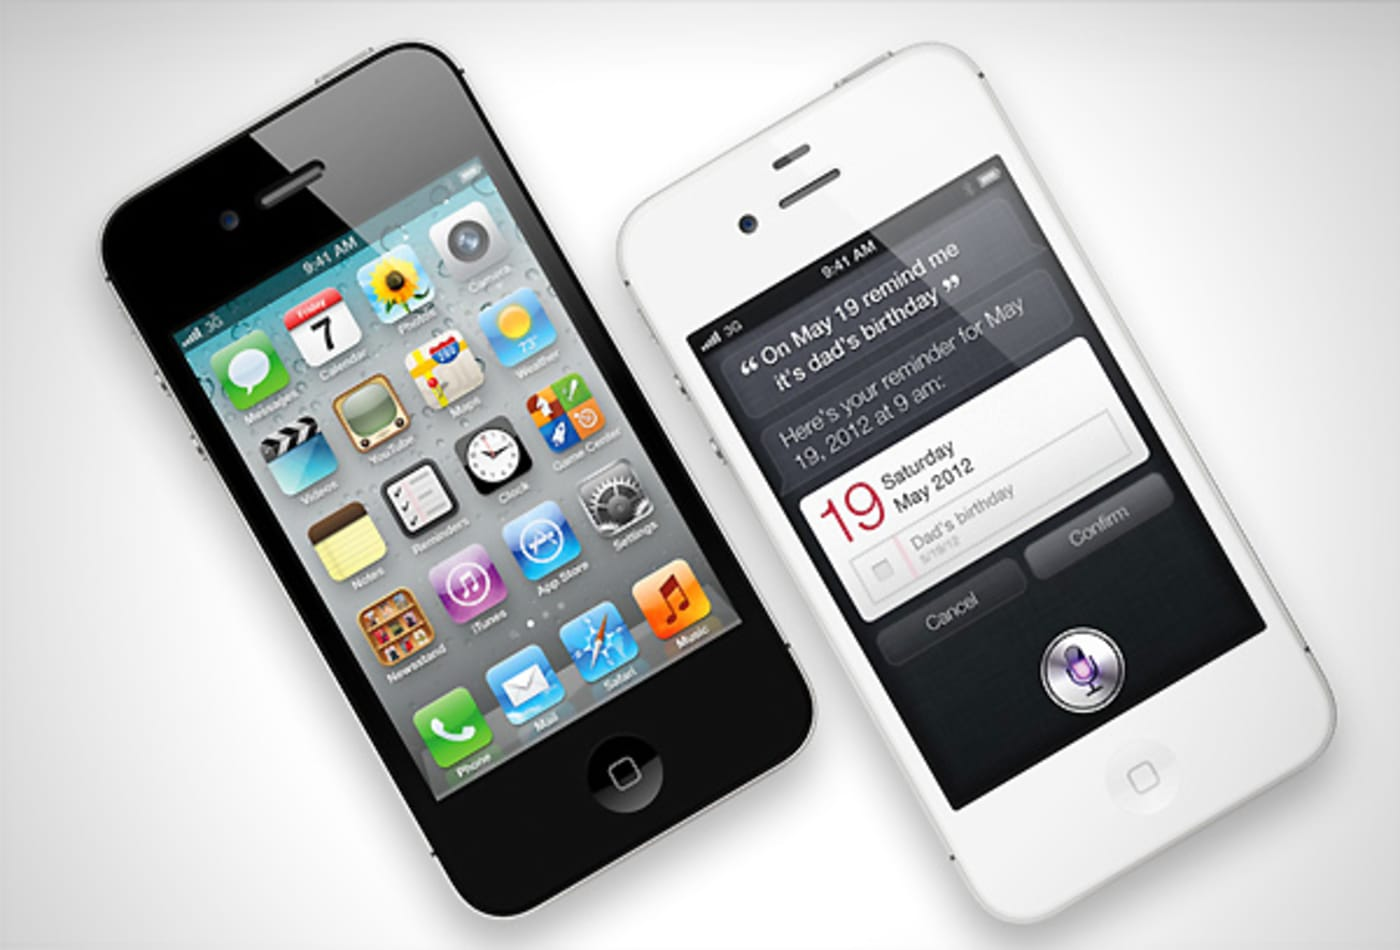 iPhone-Inventions-Killed-Businesses-SS.jpg